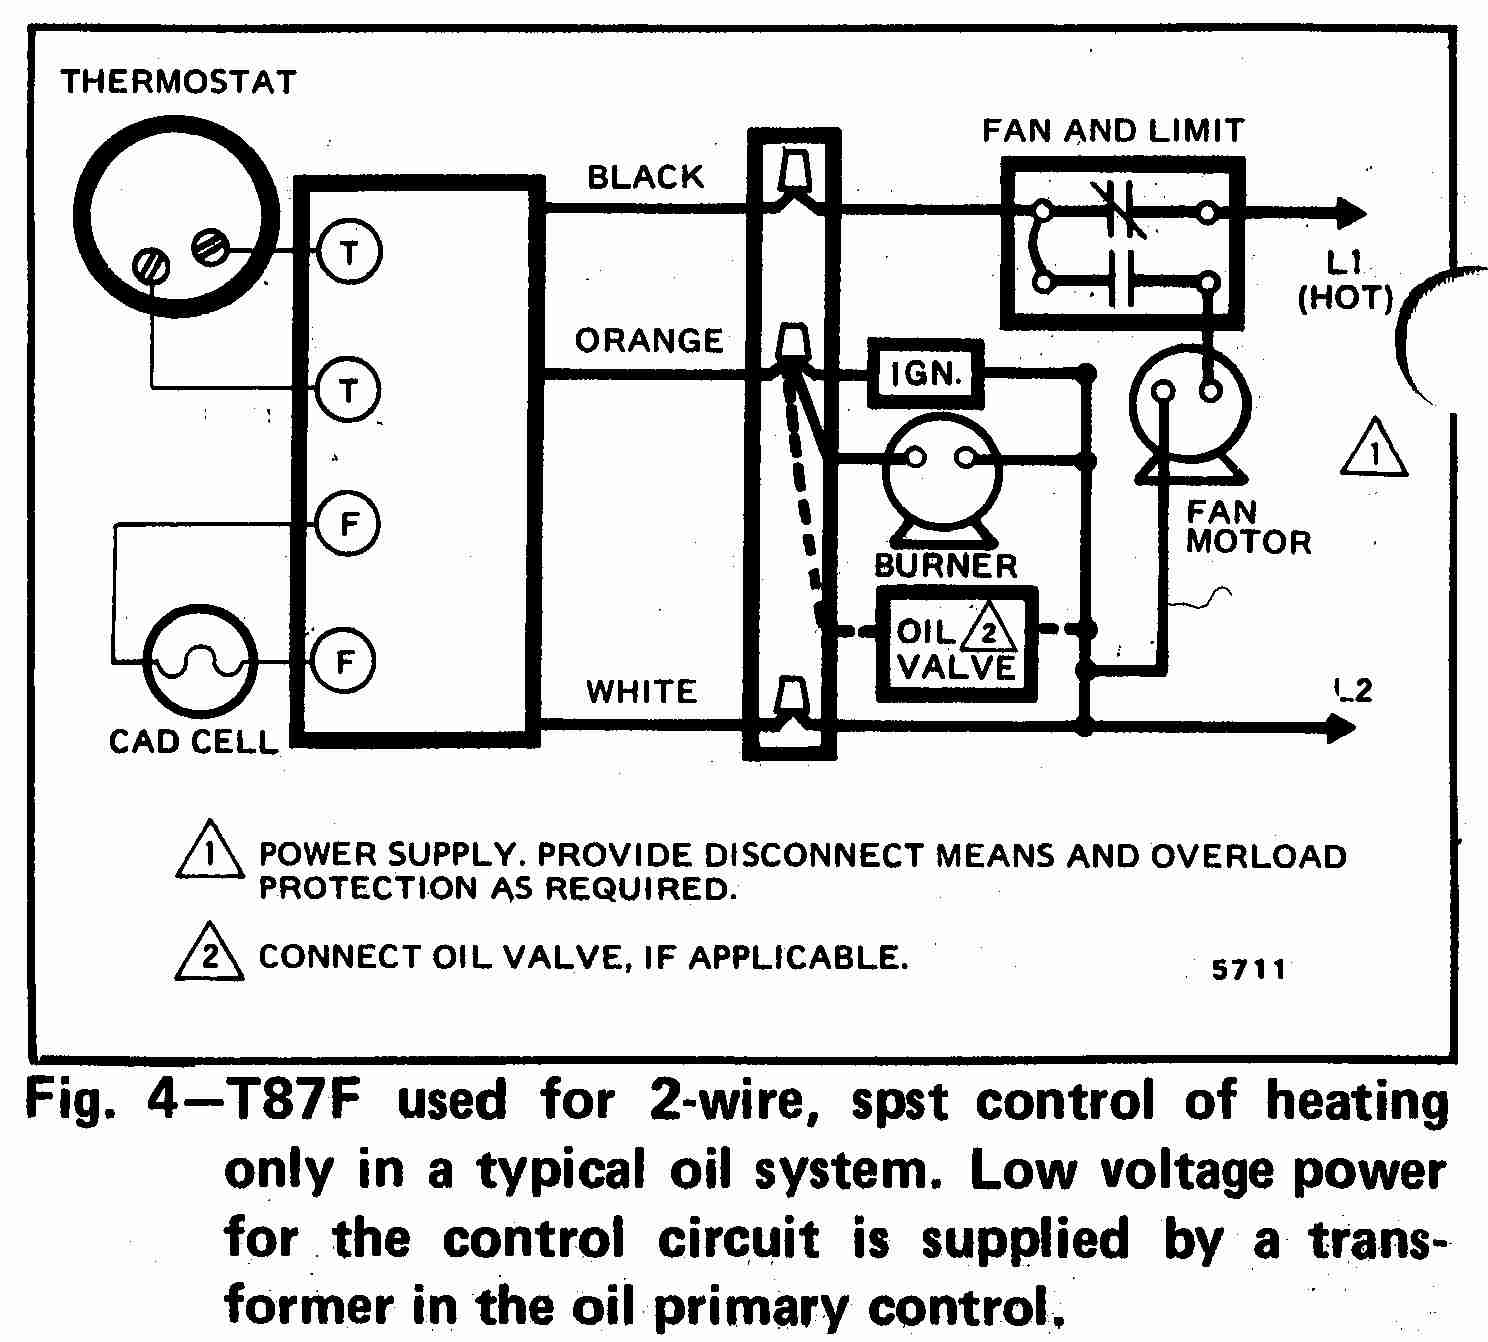 TT_T87F_0002_2W_DJF hvac control wiring diagram hvac compressor wiring diagram \u2022 free honeywell pressure switch wiring diagram at soozxer.org